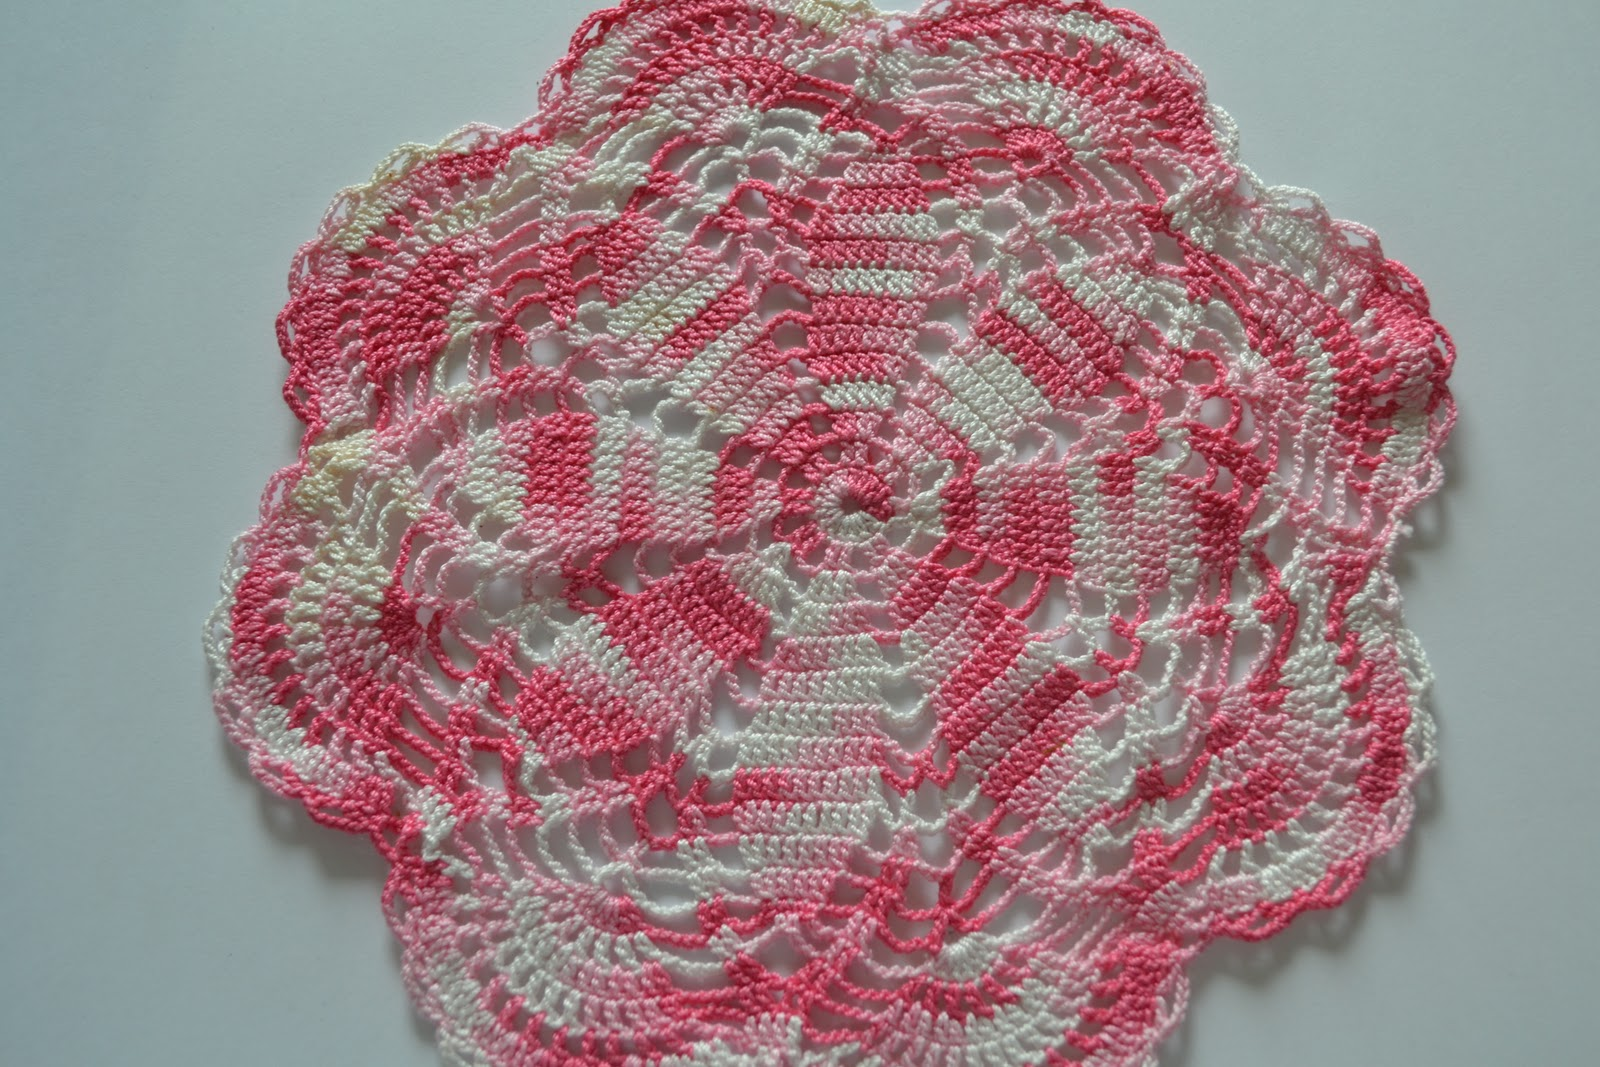 Free crochet patterns doilies easy dancox for variety is the very spice of life sweet daisy doily the free crochet patterns doilies easy bankloansurffo Gallery